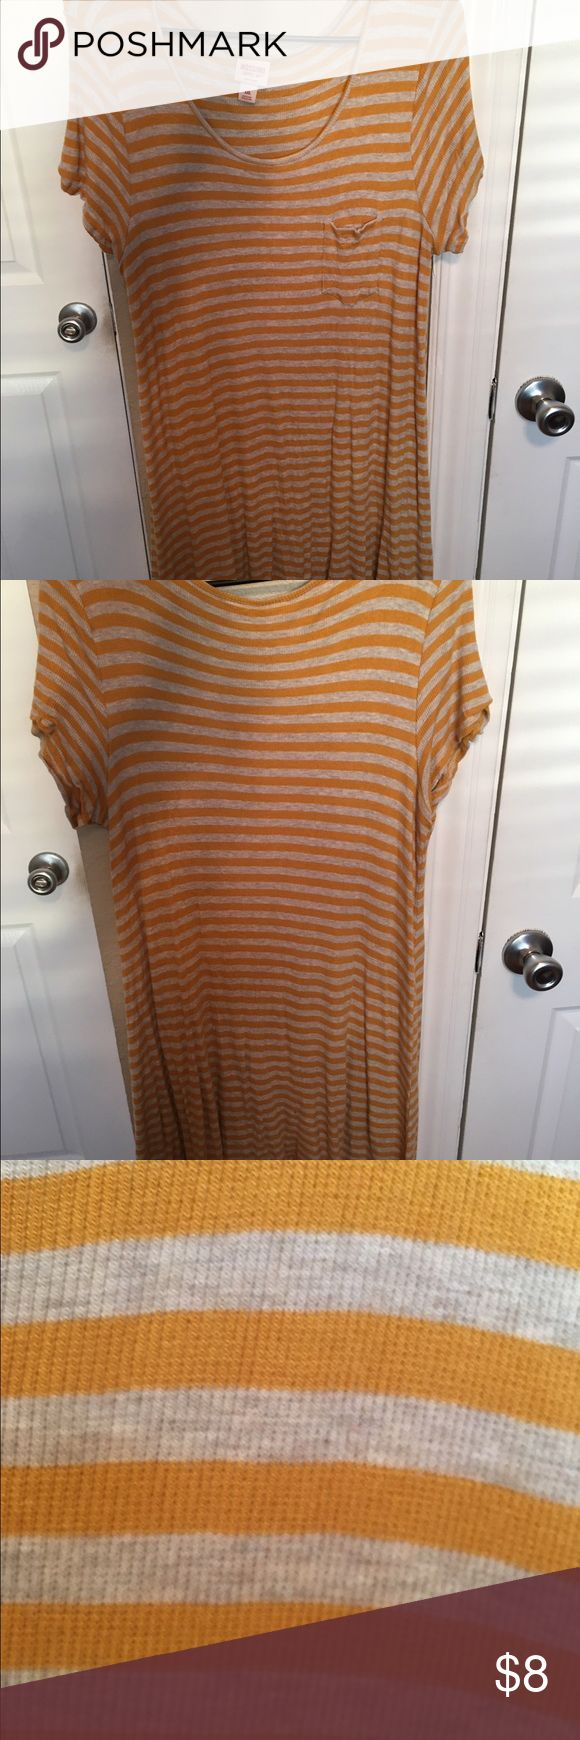 Striped plus size midi dress Striped plus size midi dress. Worn once. Great for people taller than 5'7! Super soft and stretchy material, not see through at all. Smoke free, pet free household. 🚫🚬🐶🐱 Mossimo Supply Co Dresses Midi